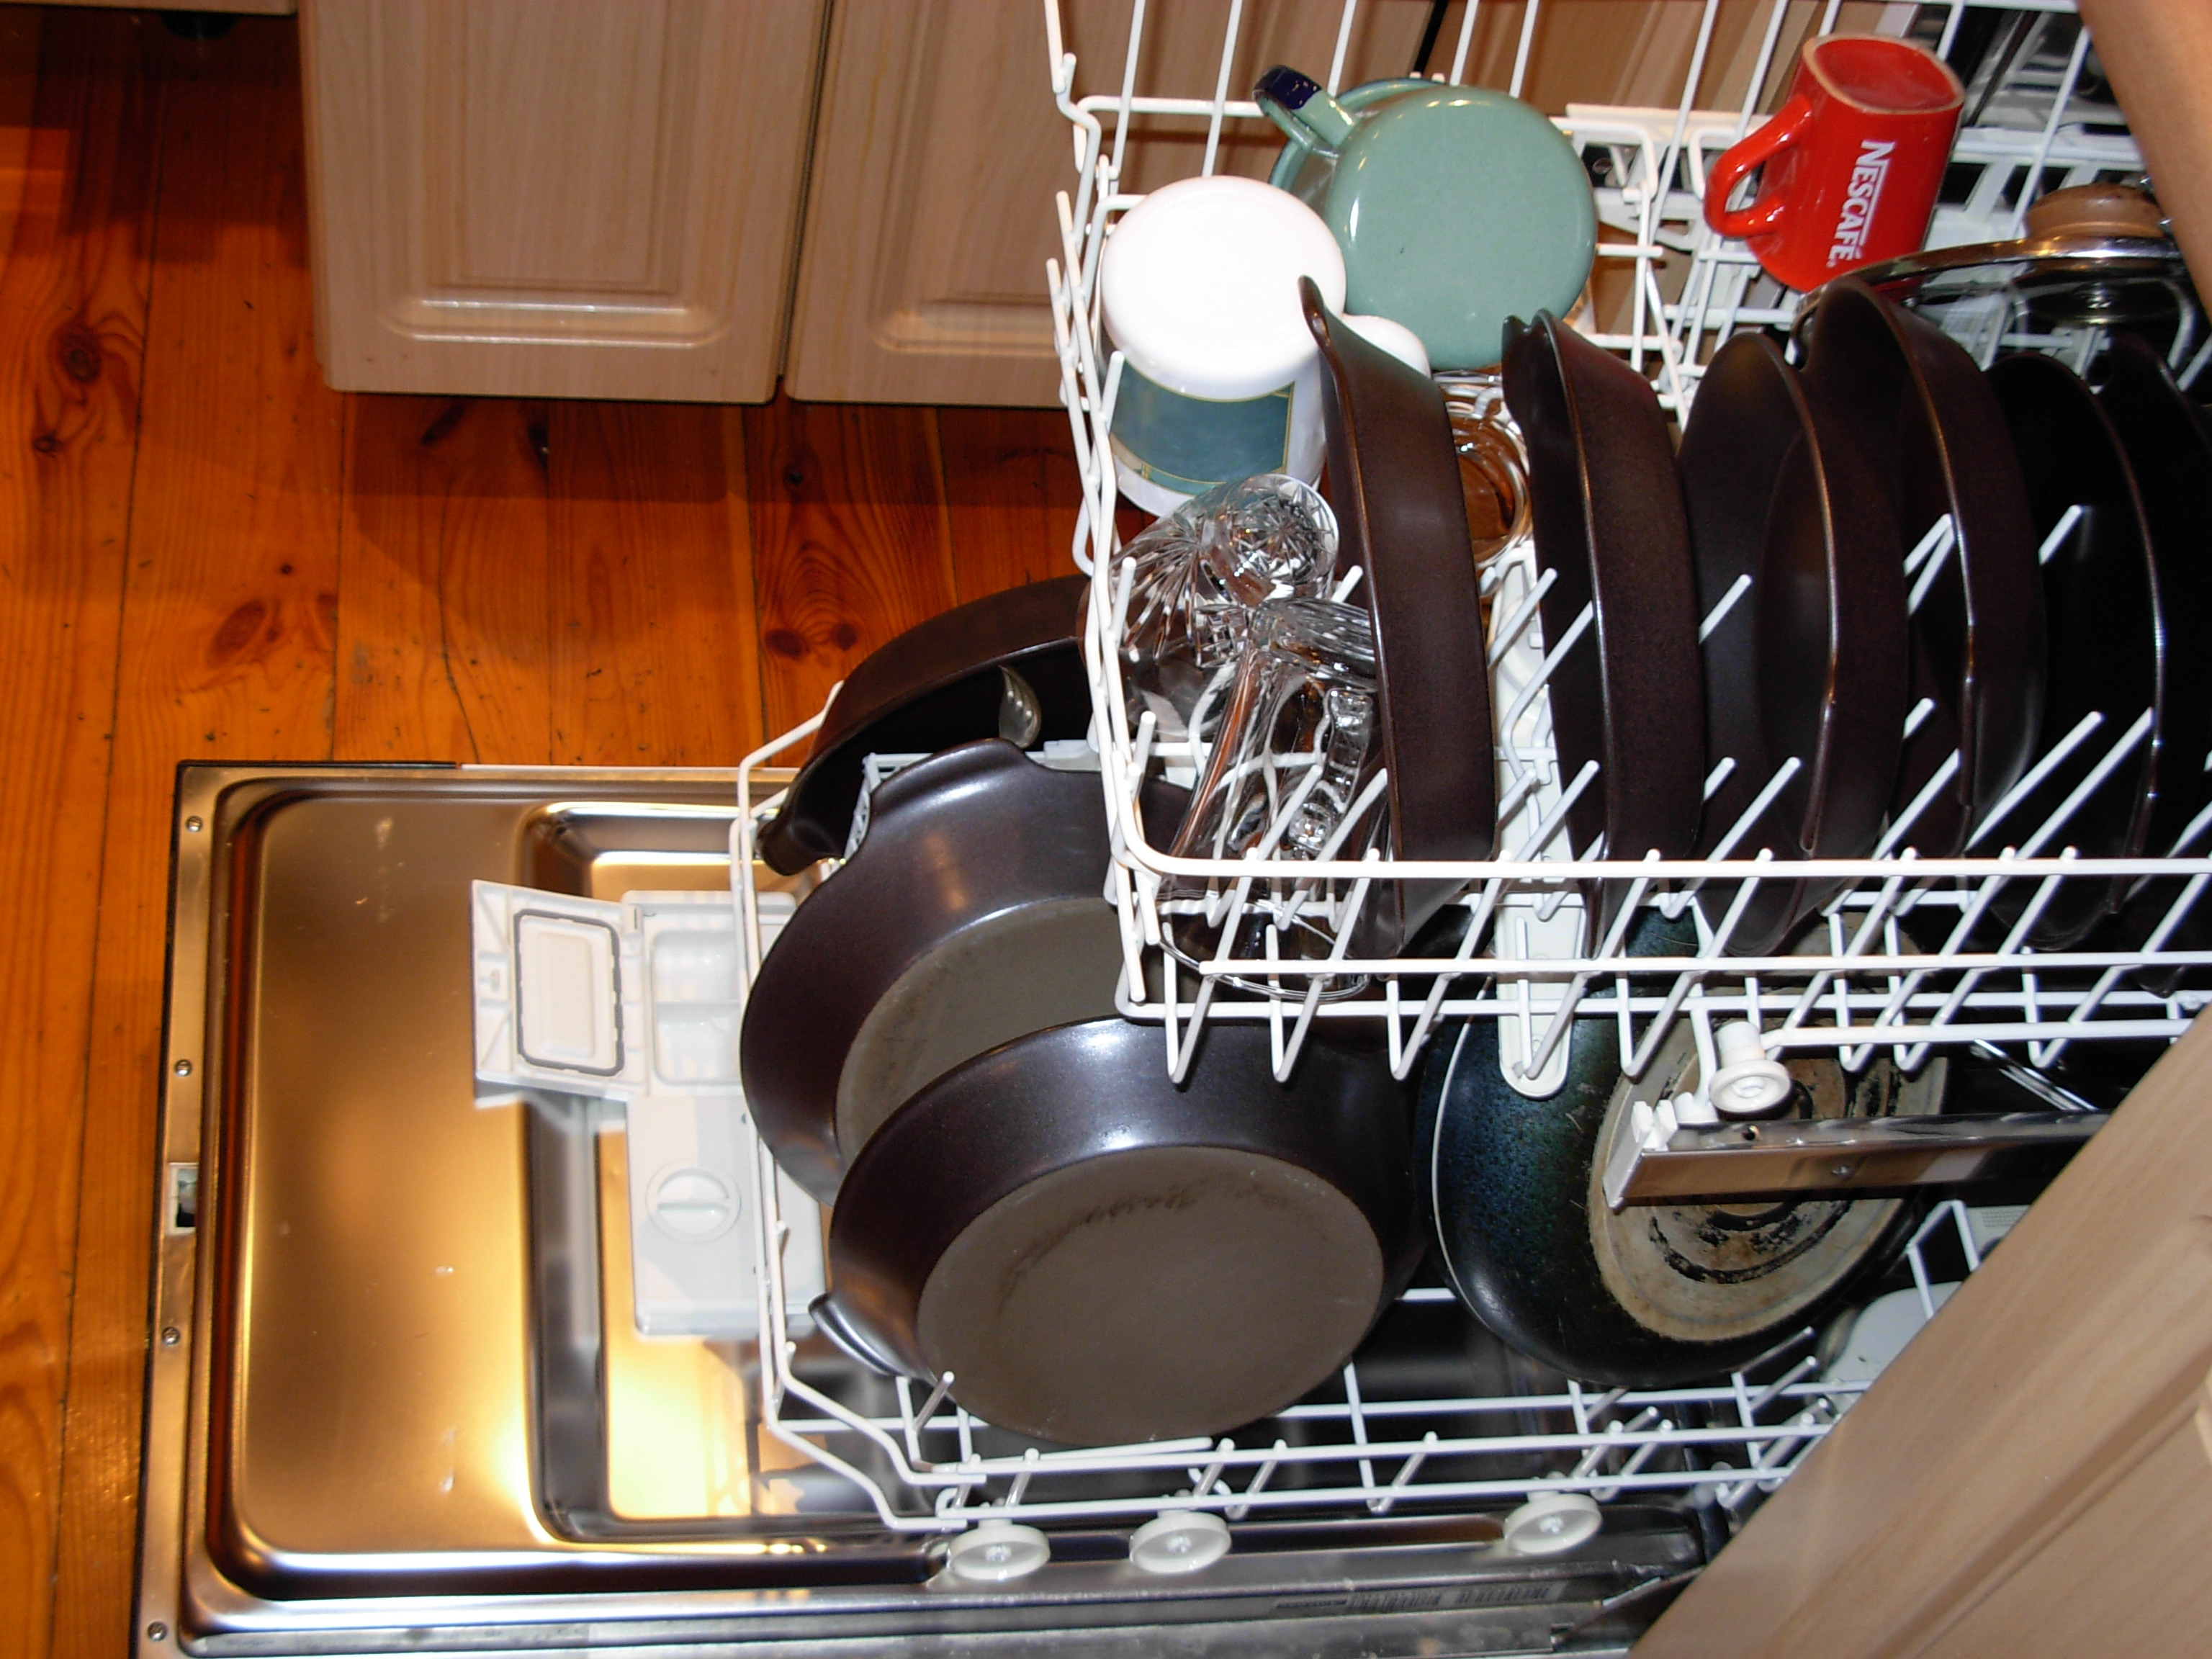 Use a dishwasher instead of washing your dishes by hand in the sink - Cut back on water use - Image courtesy of https://upload.wikimedia.org/wikipedia/commons/e/e0/Dishwasher_with_dishes.JPG